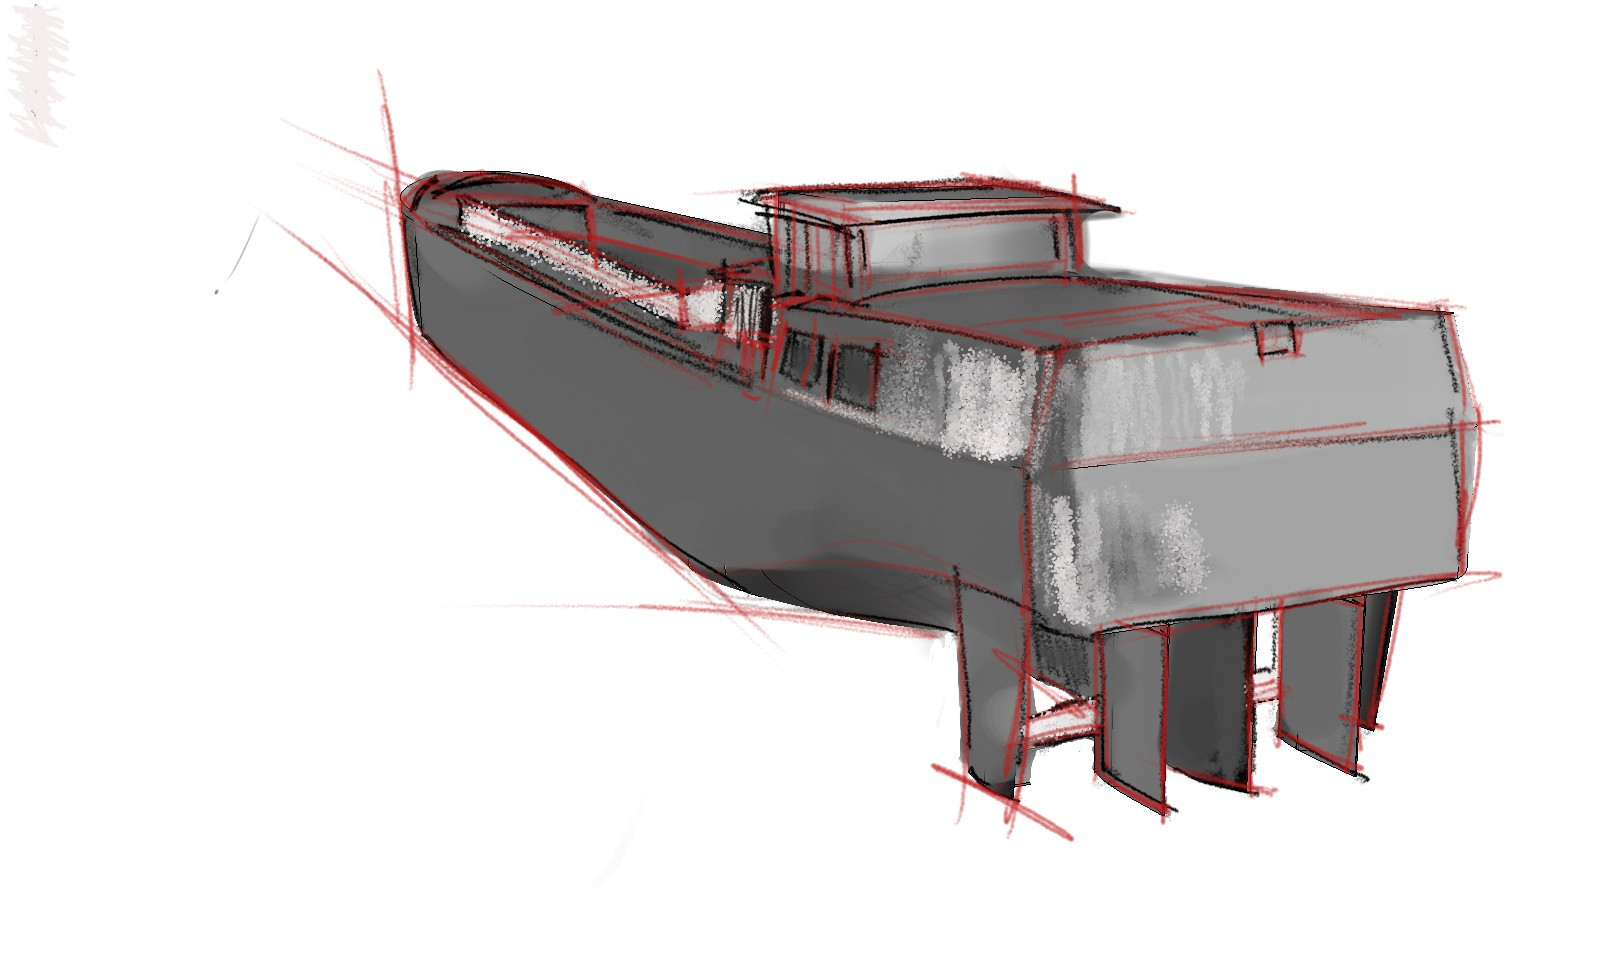 Rough sketch of the Ship